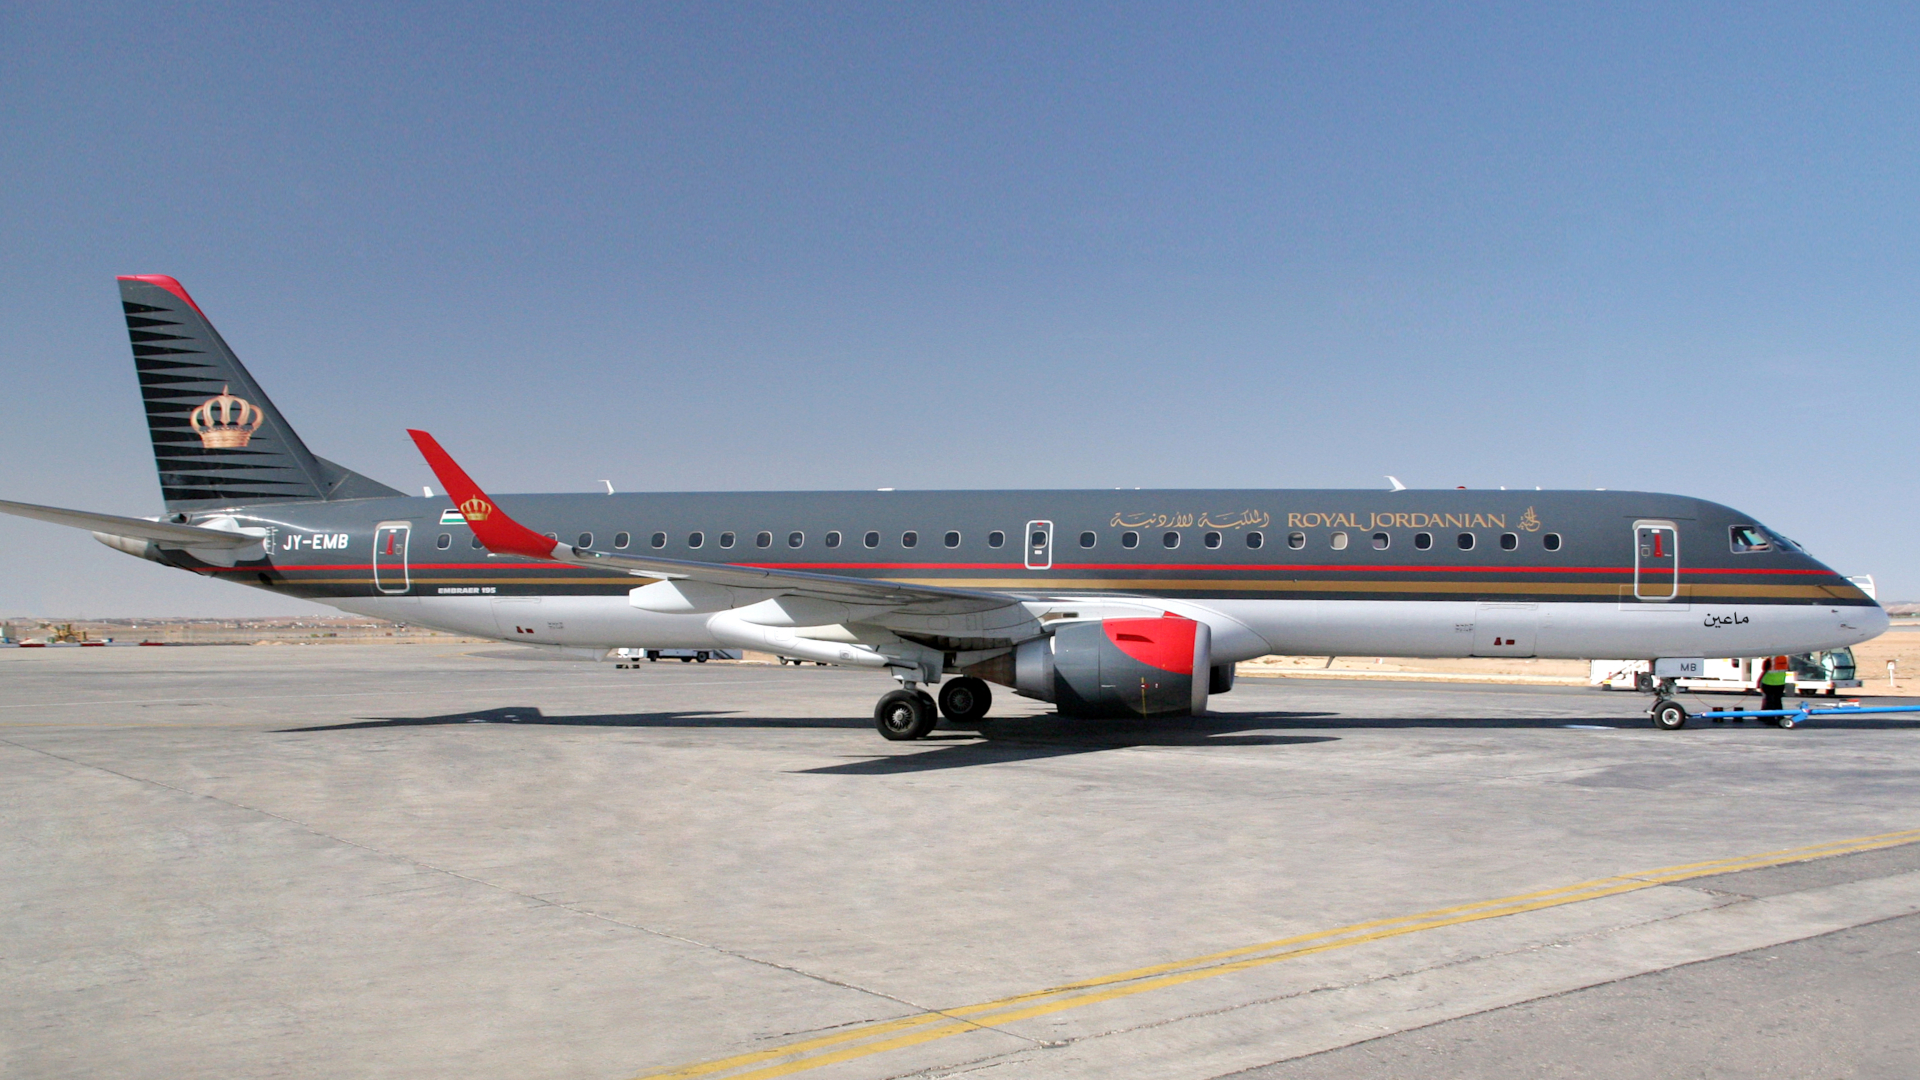 Hawker Pacific provides landing gear services for Royal Jordanian